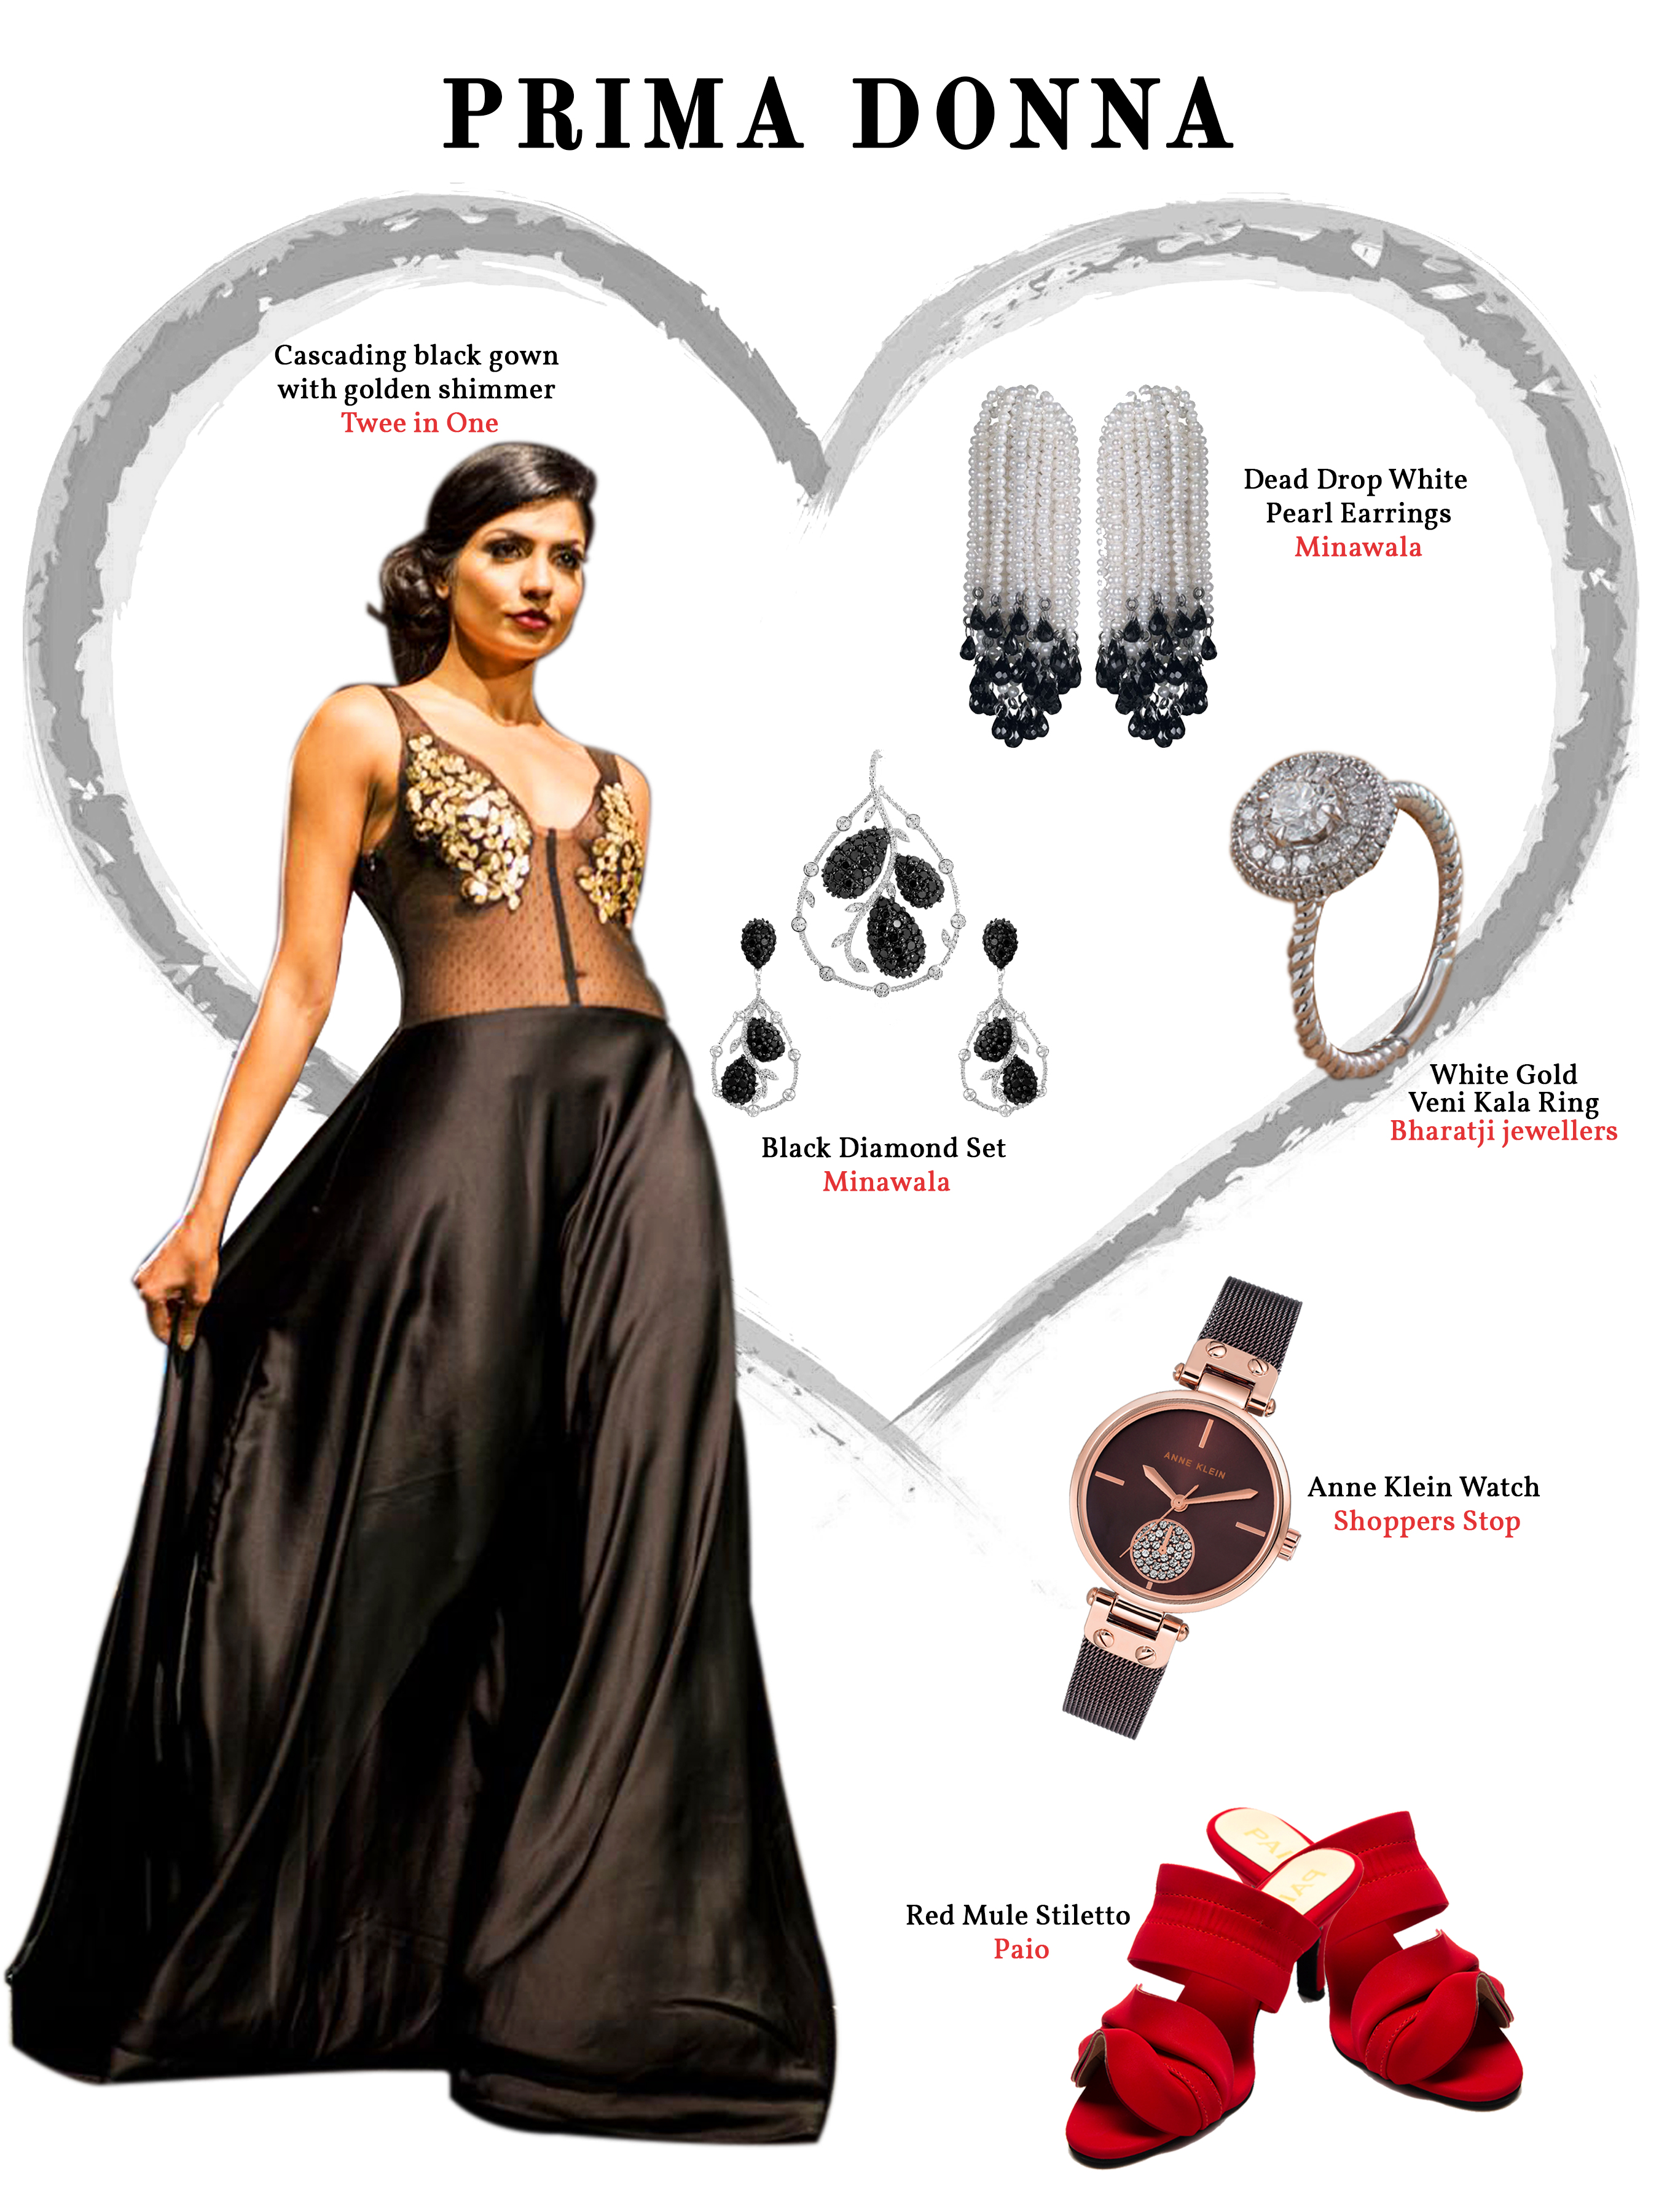 Ciceroni- Pick of the month – Valentine 's Day – Ahmedabad – shopping guide – gifting options – fashion and lifestyle – shopping for valentine's day – jewellery – Paio – Minawala – Titan – Body Cupid – Indian Dobby – Melorra – ToniQ – RK Jewellers - Twee in One - Studio Casa 9- Givenchy - Narayan Jewellers – Julia Roberts – Audrey Hepburn – Emma Stone – Breakfast at Tiffany's – Pretty Woman – La La Land- Bharatji Jewellers